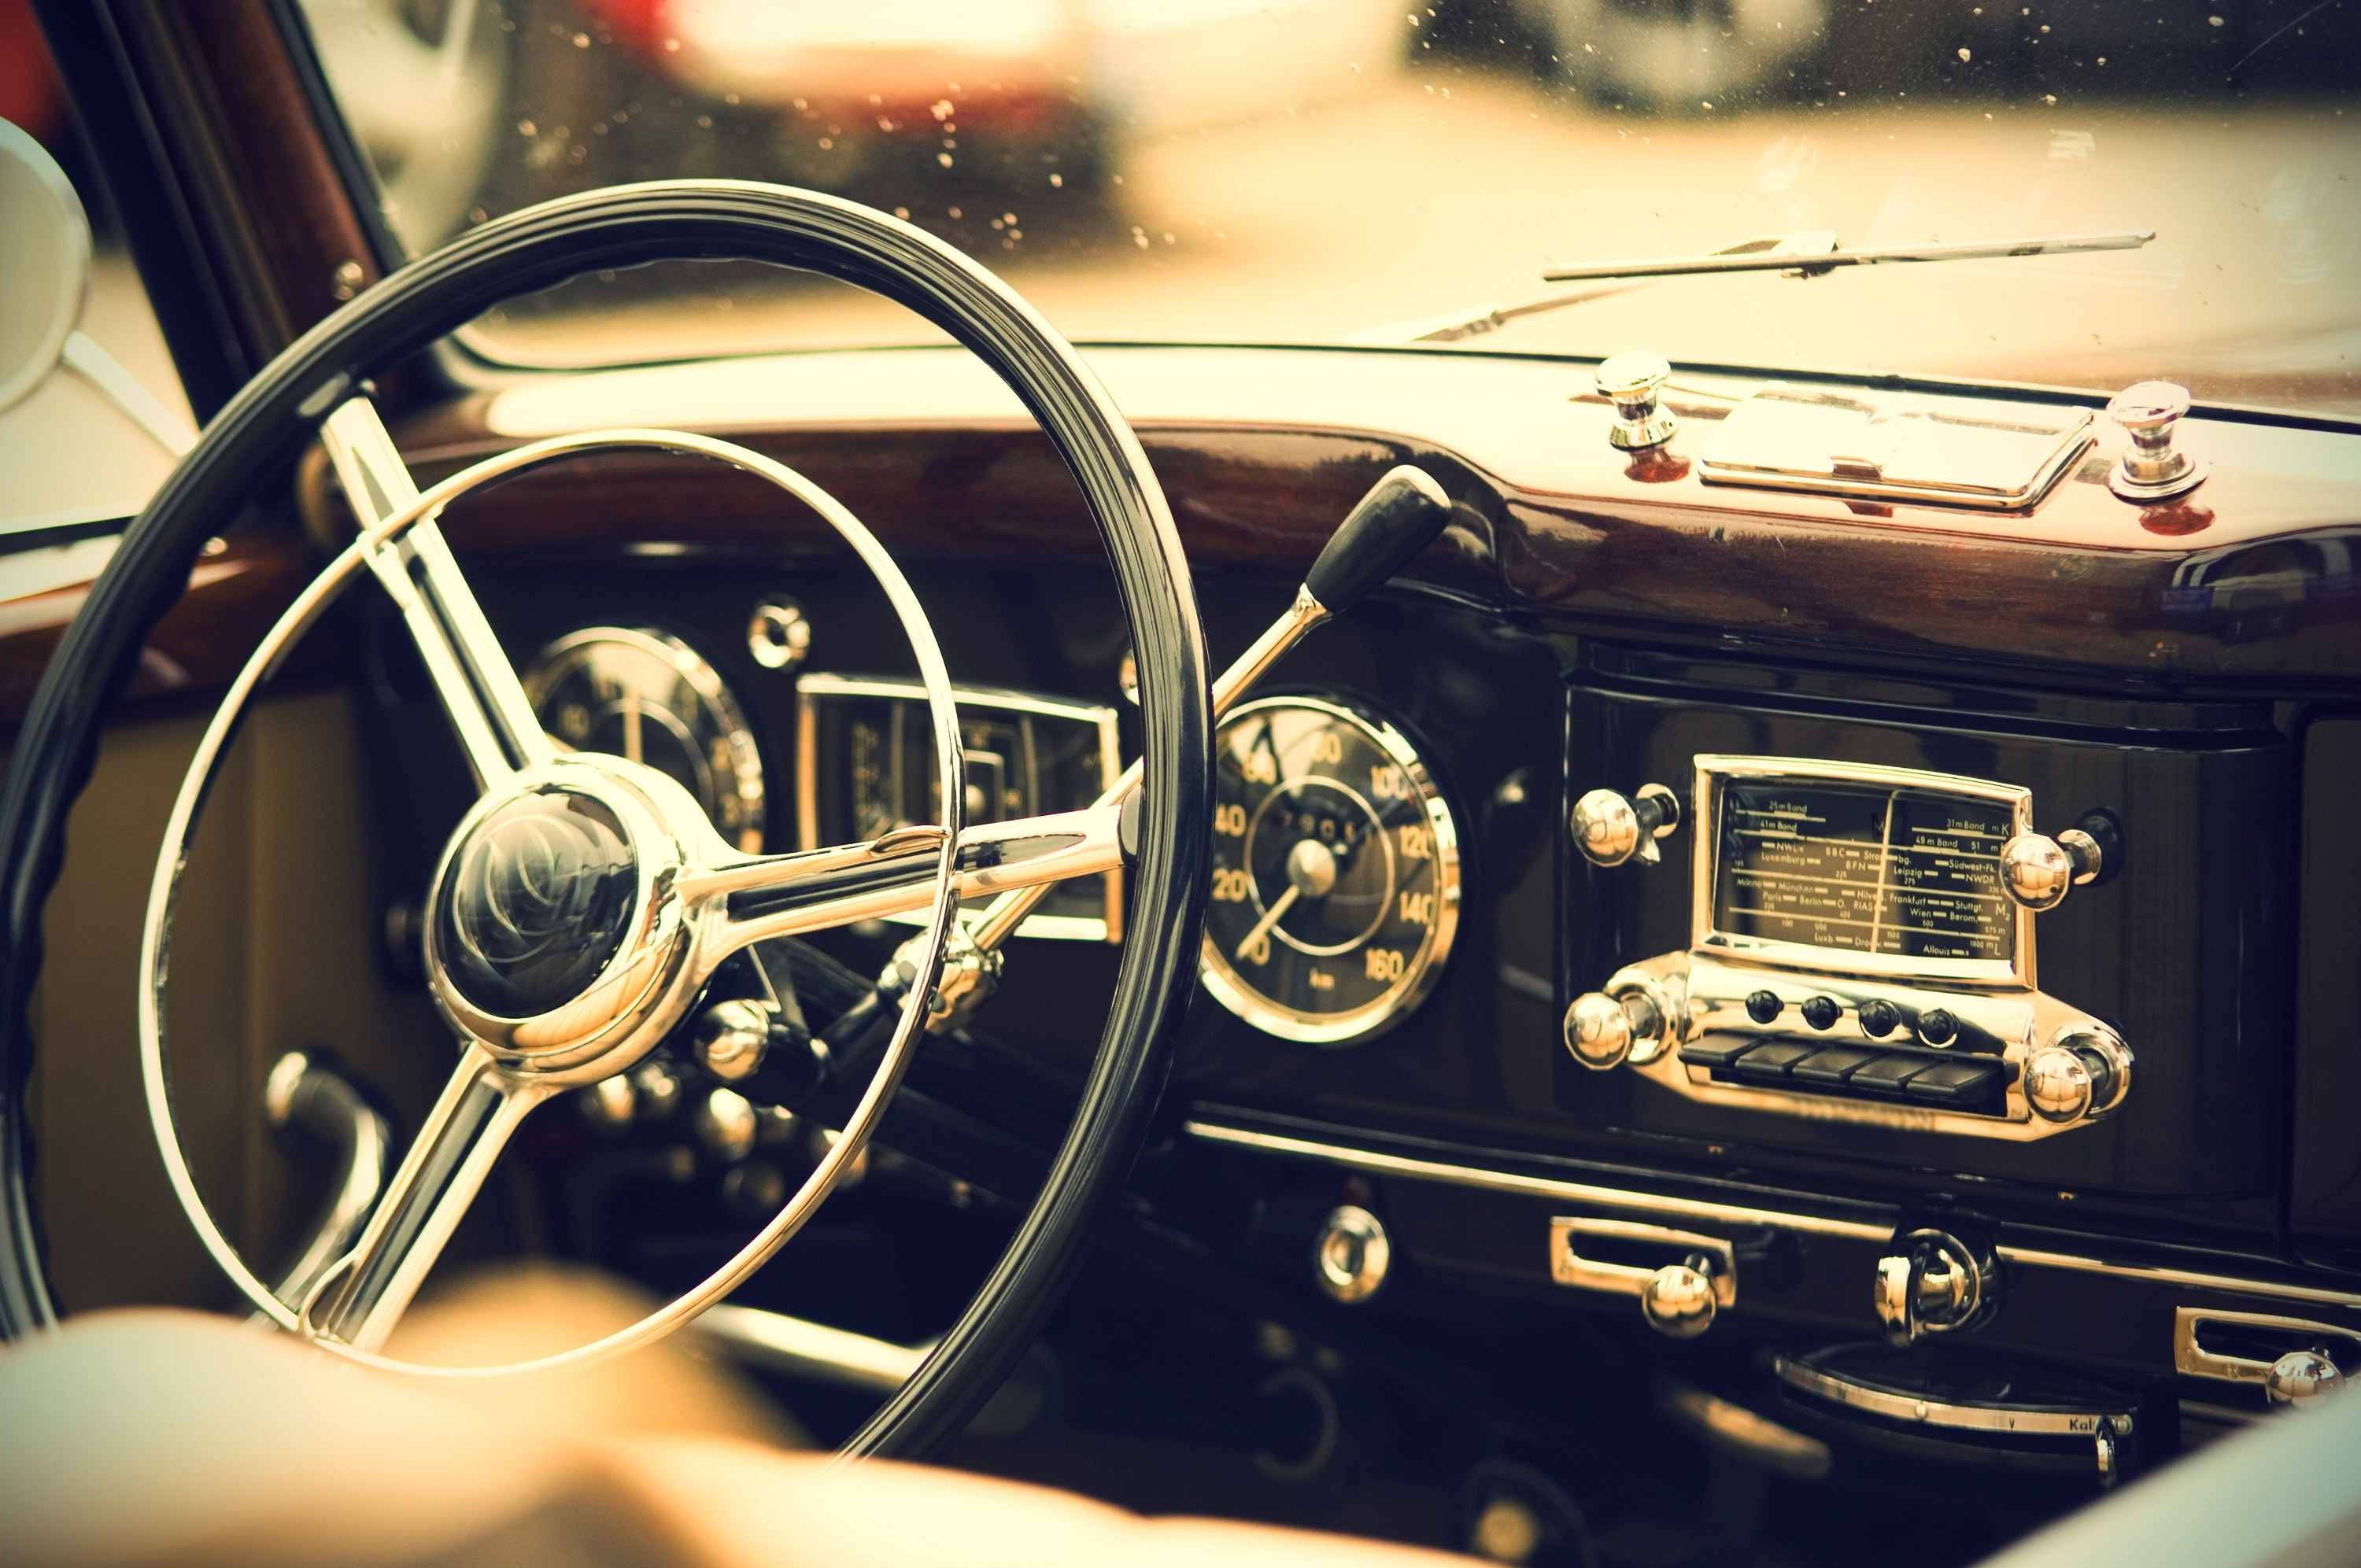 Free stock photos of old car · Pexels